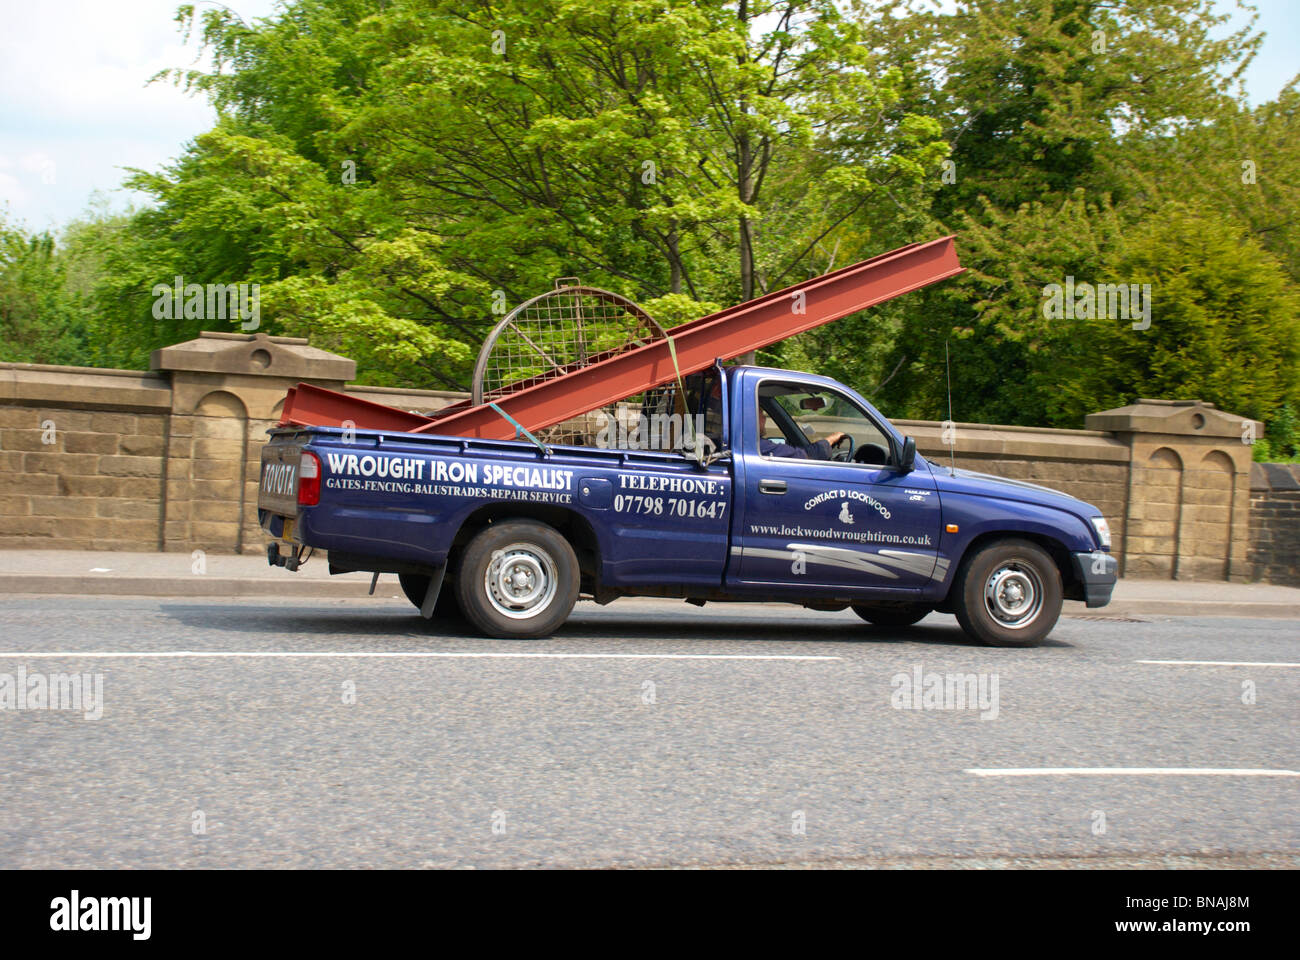 Pick-up truck carrying iron / steel products - Stock Image